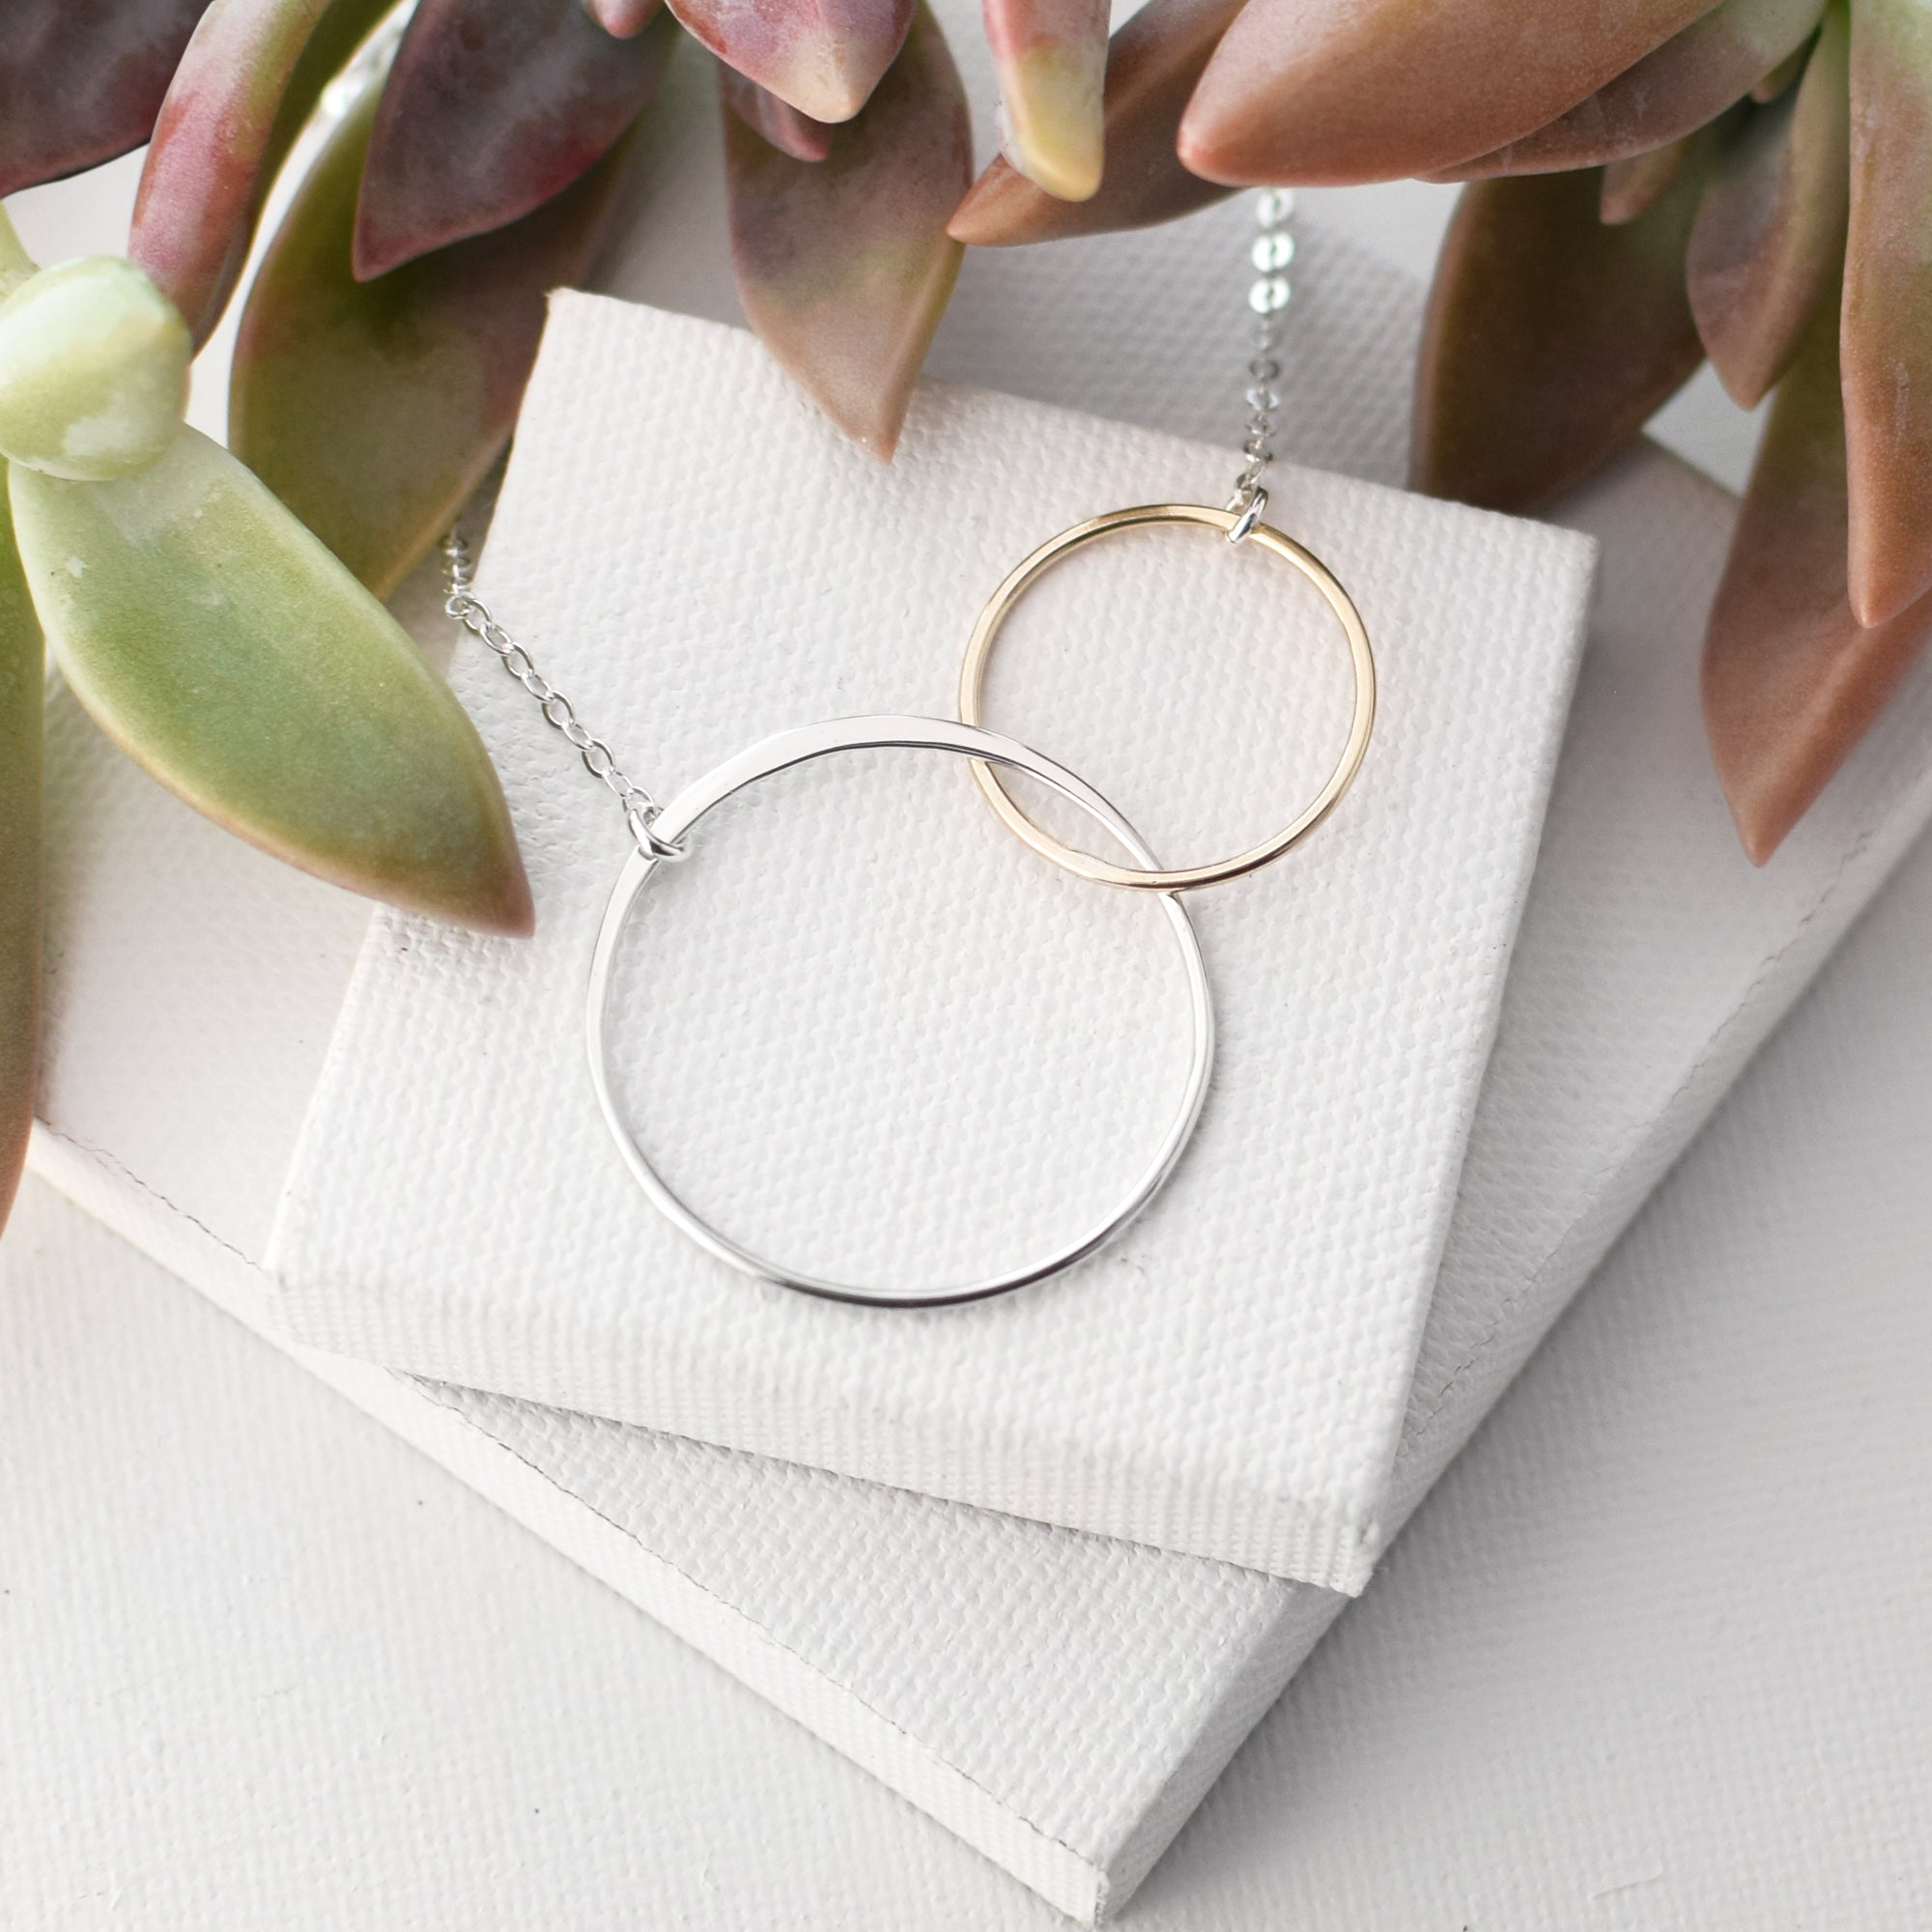 Cynthia Linked Gold & Silver Circle Necklace